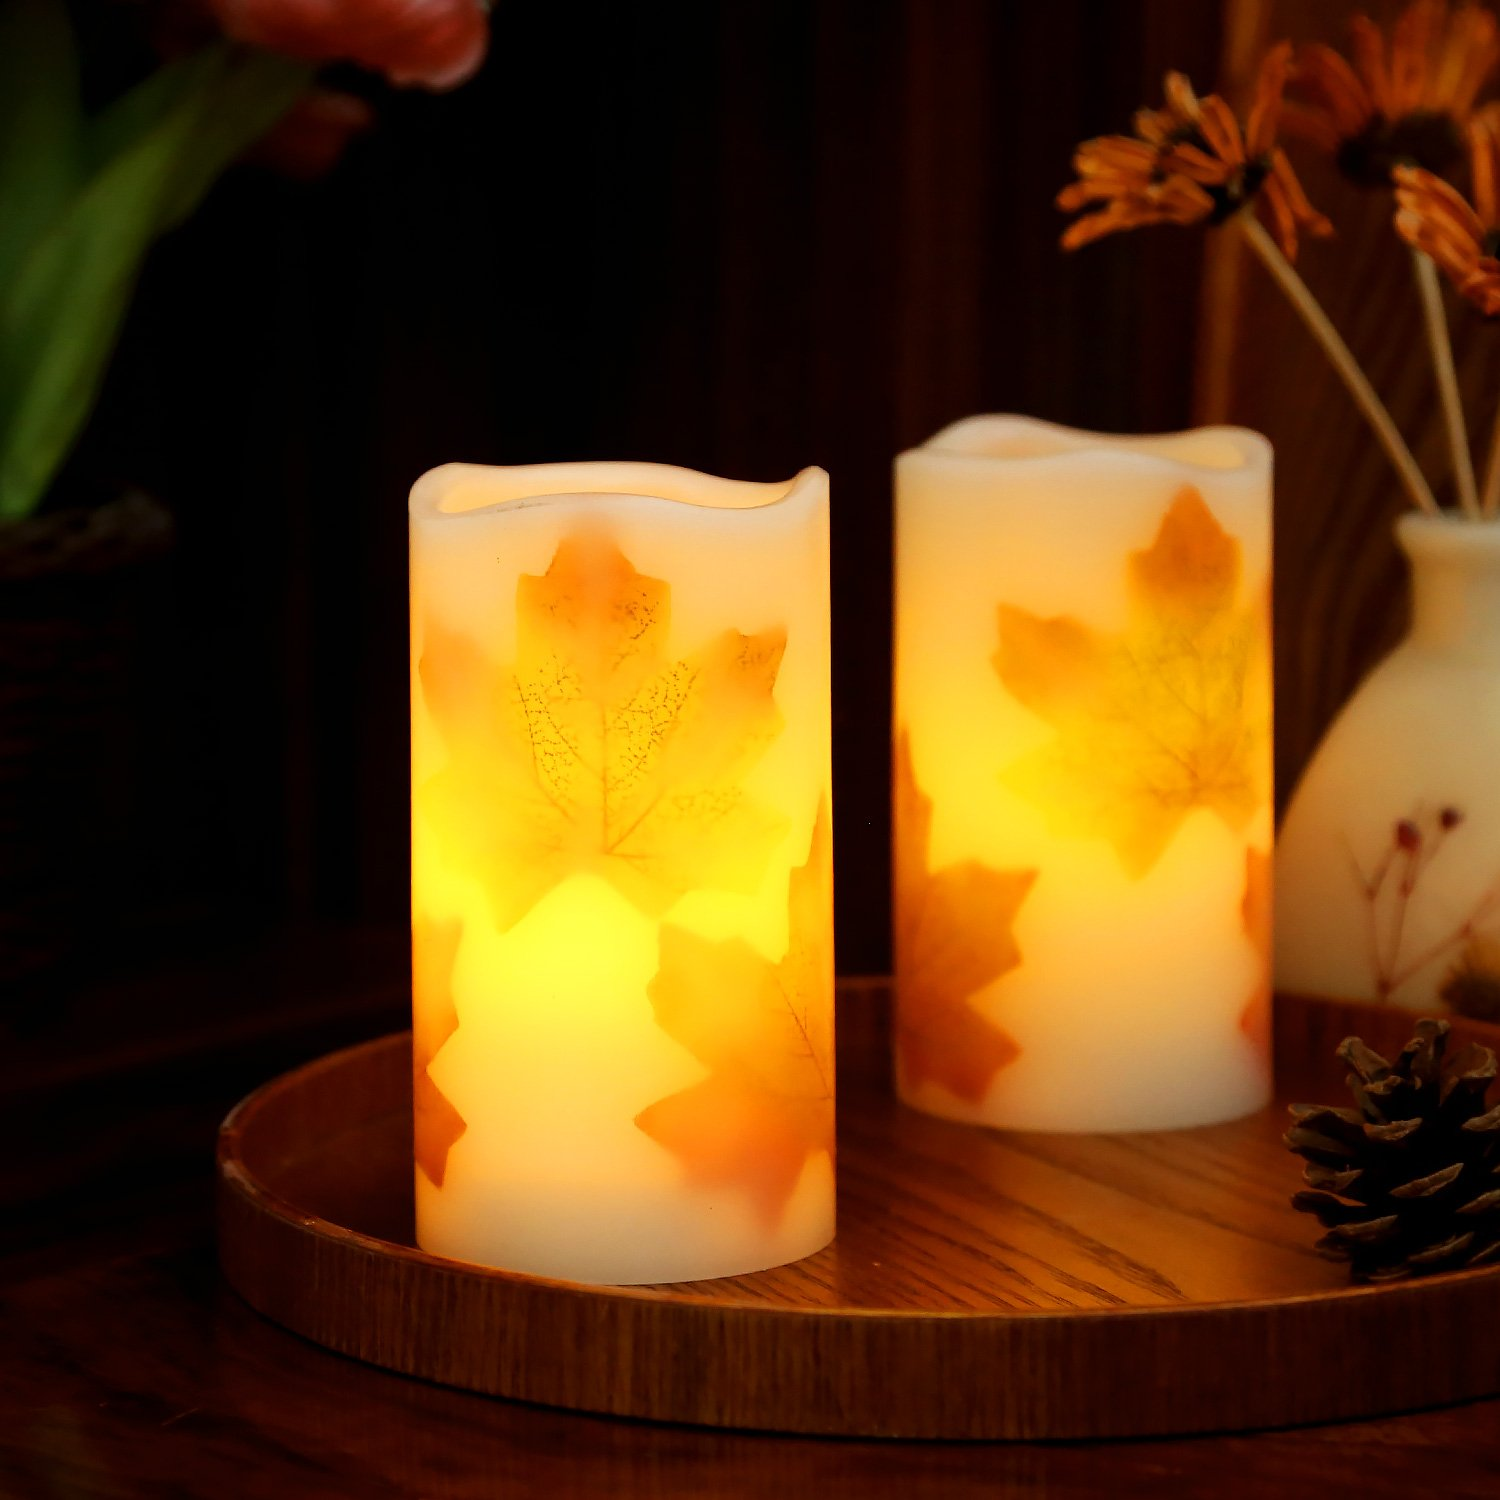 Amazoncom Greluna Flameless Maple Leaf Candles, Fall Flameless Candles With